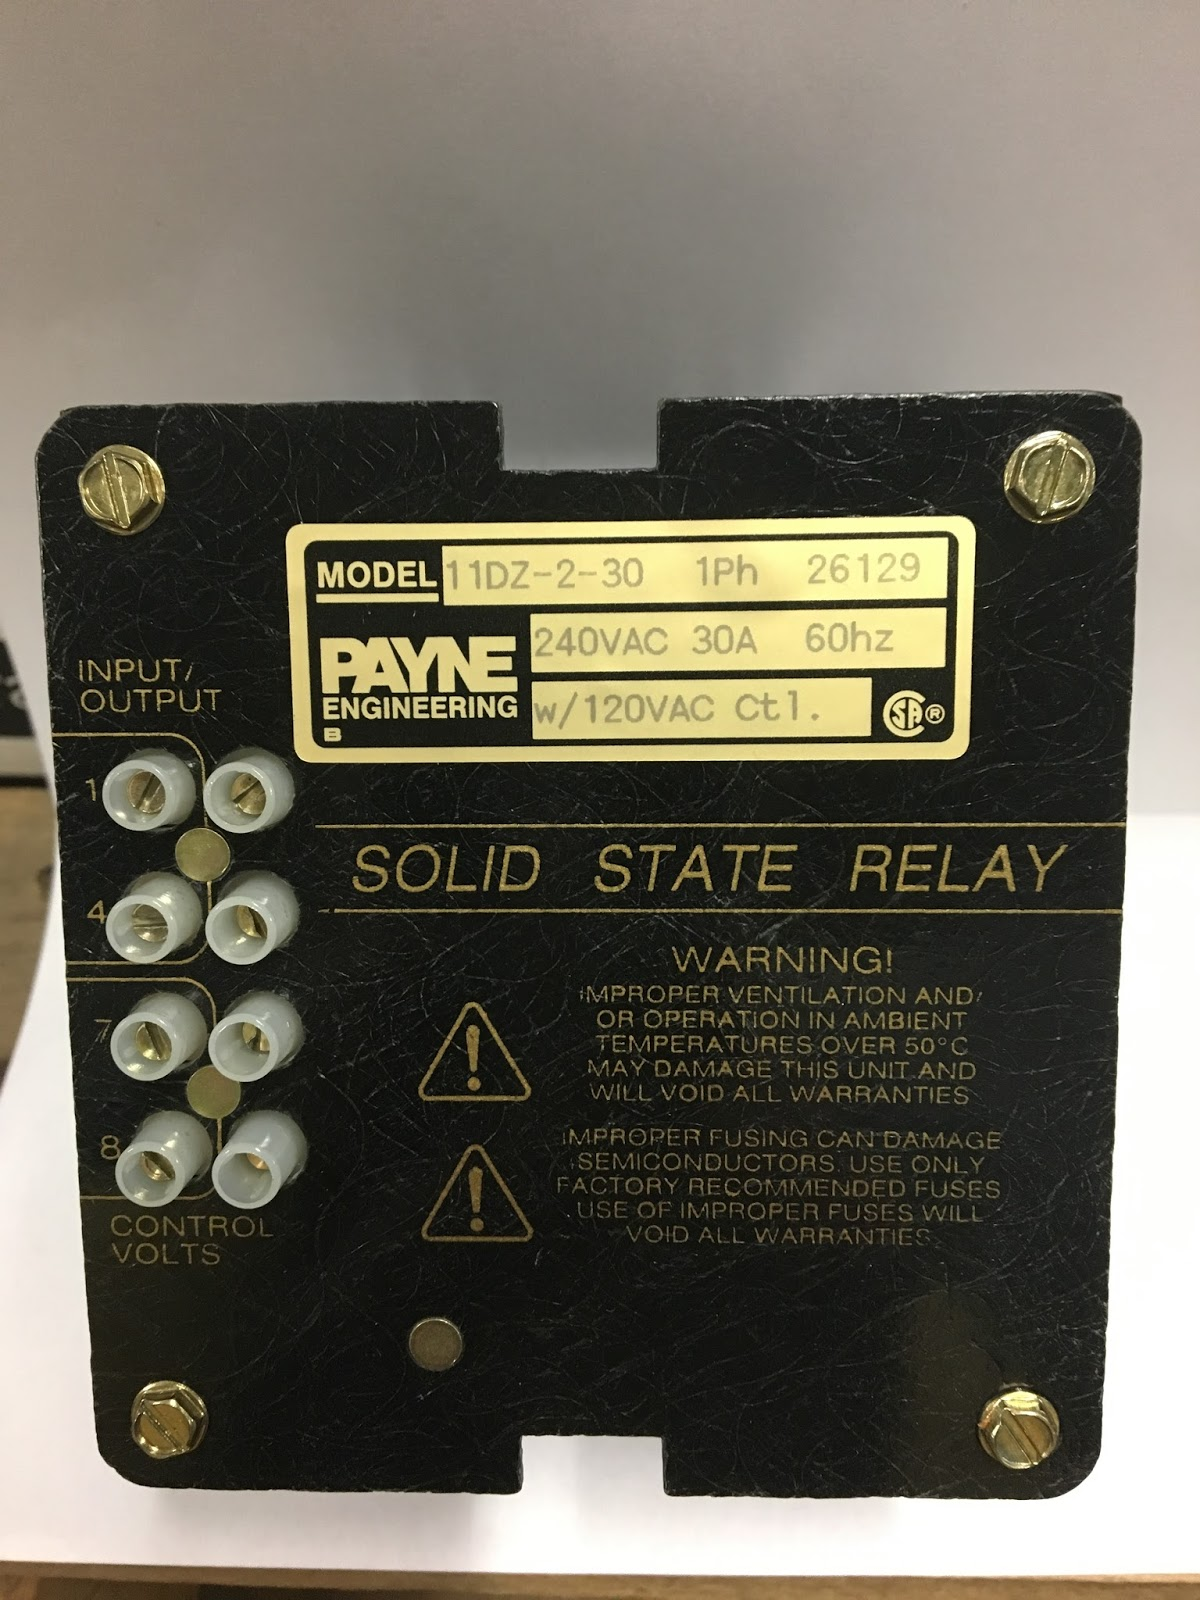 Industrial Electric Switches Solid State Over Stock At Sords Relay Vs Scr Continental Ssr Rva3 6v75t H 75 Amp Three Phase 30 Amps Max Per 120 280 Vac Input 24 660 Output With Din Rail Mount Heat Sink